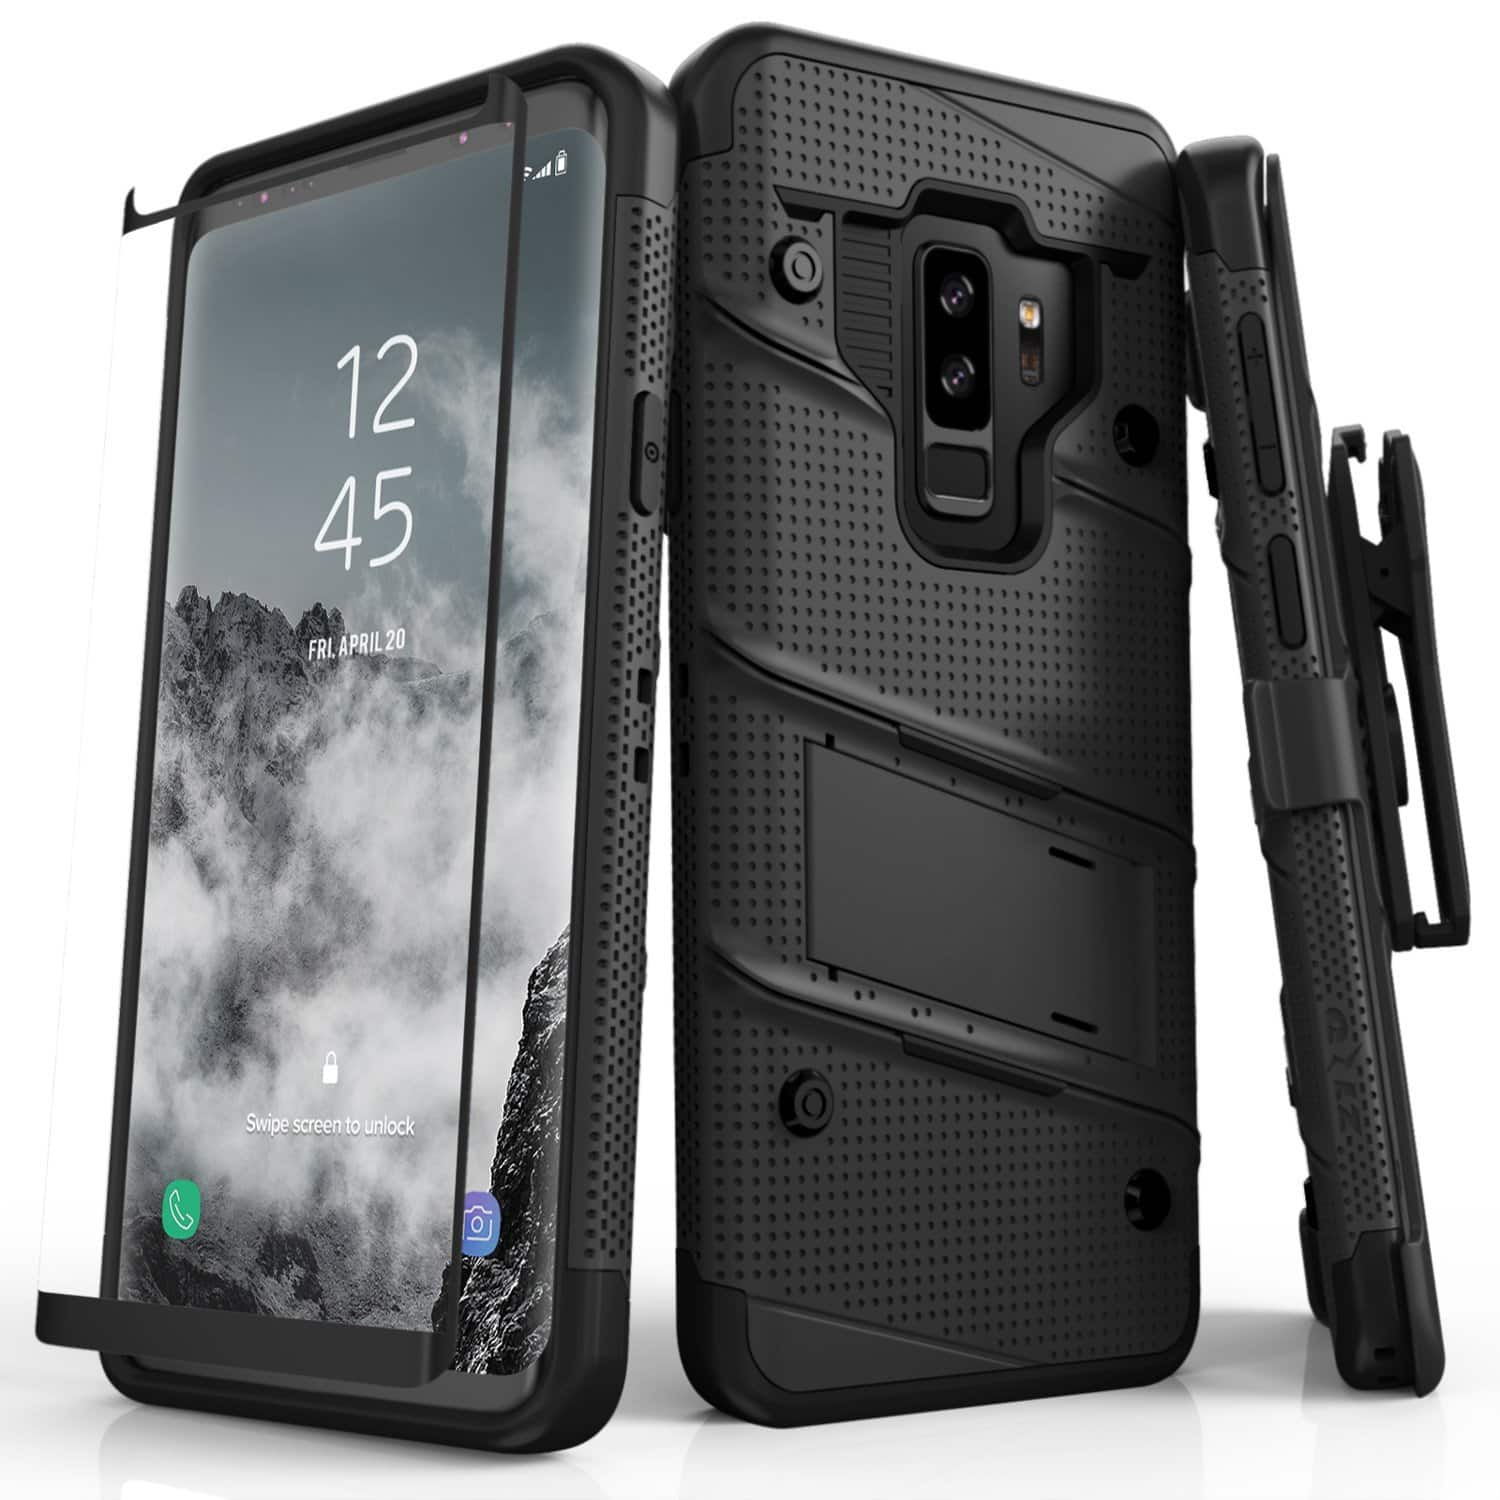 Zizo Bolt Series Samsung Galaxy S9 Plus Case - Full Curved Glass Screen Protector with Holster and 12ft Military Grade Drop Tested $16